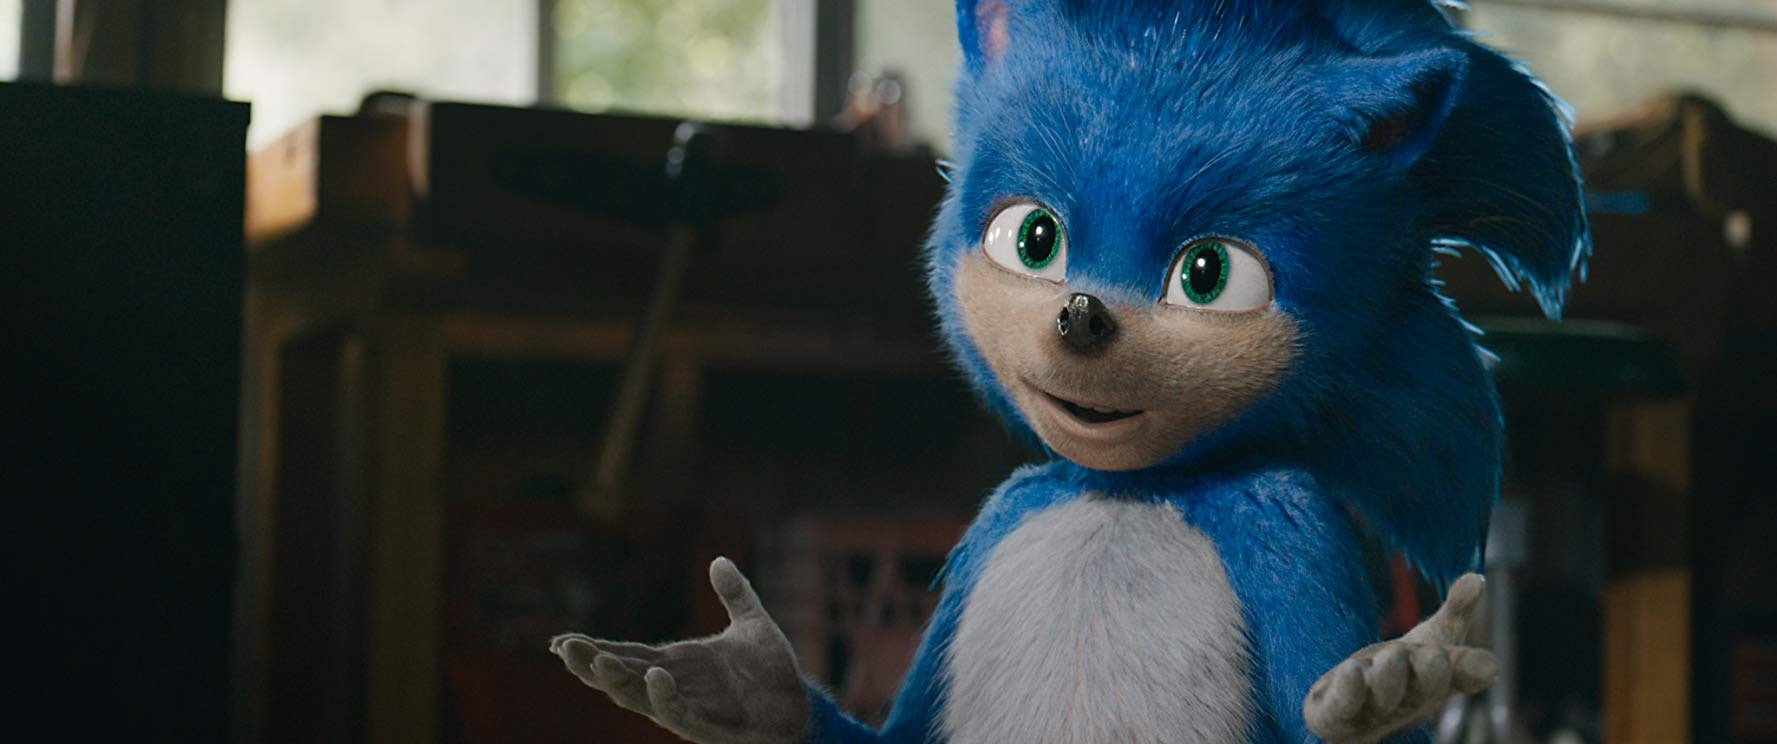 Sonic The Hedgehog Release Date Plot Cast Trailer And More To Know